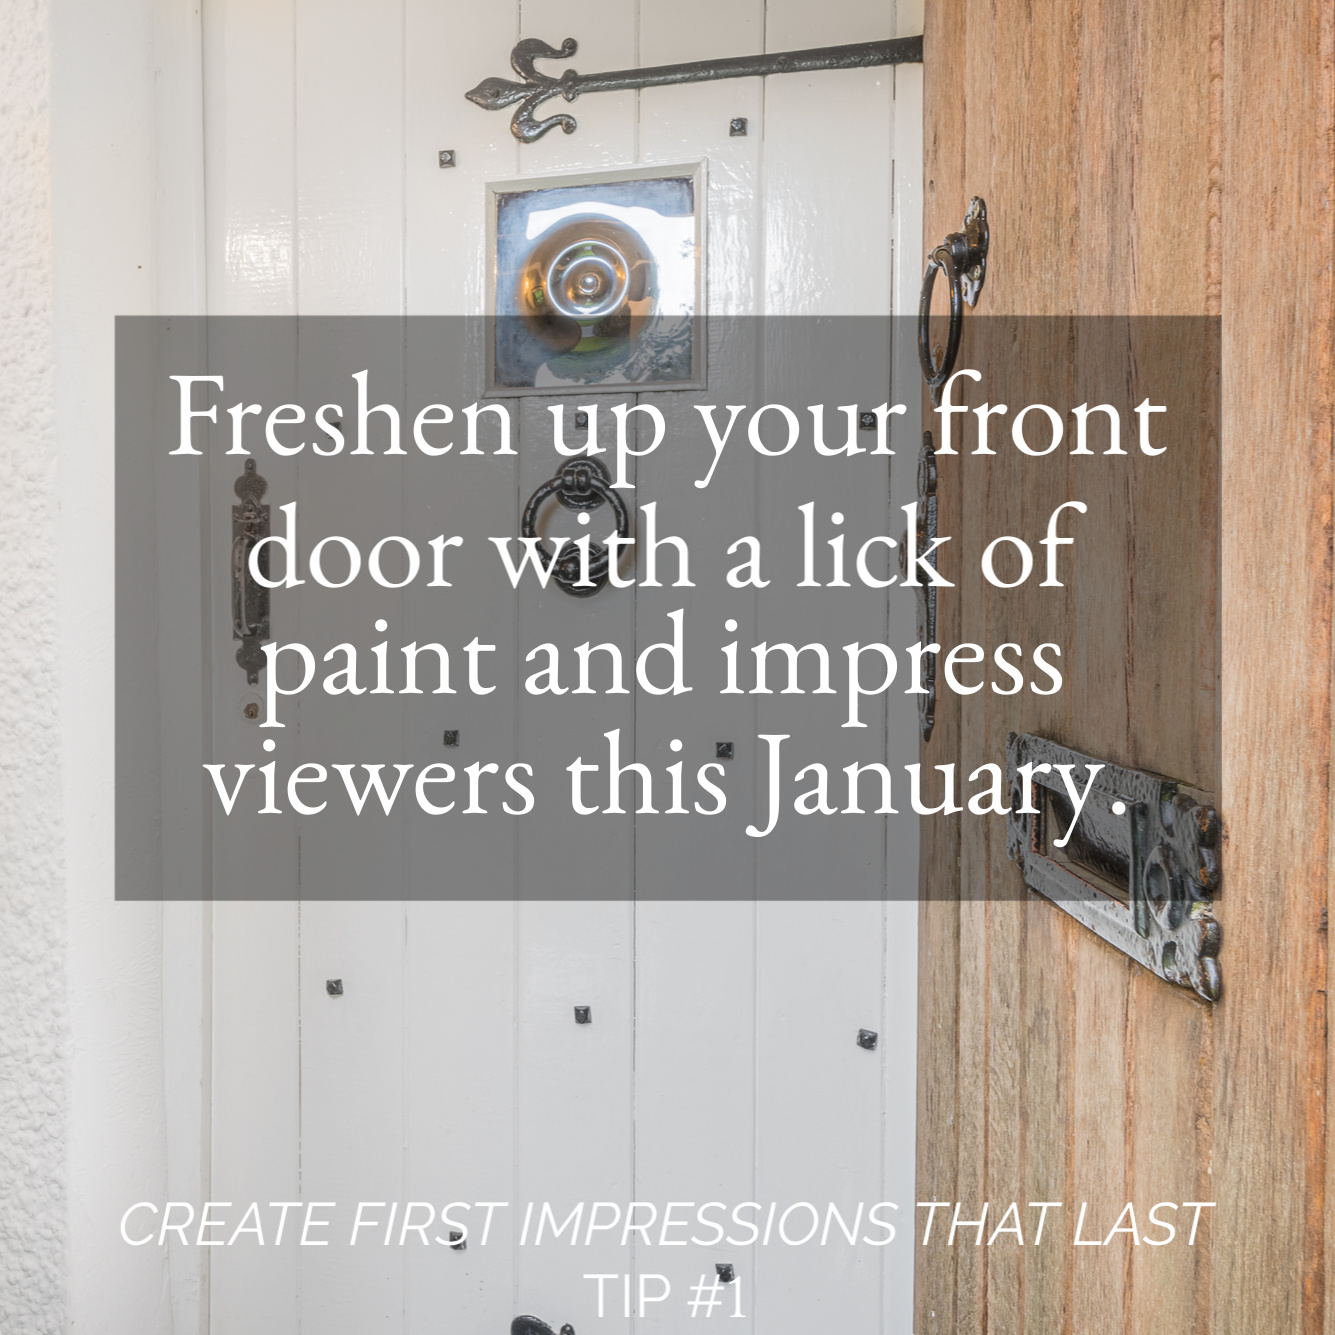 tg1-freshen-up-the-front-door